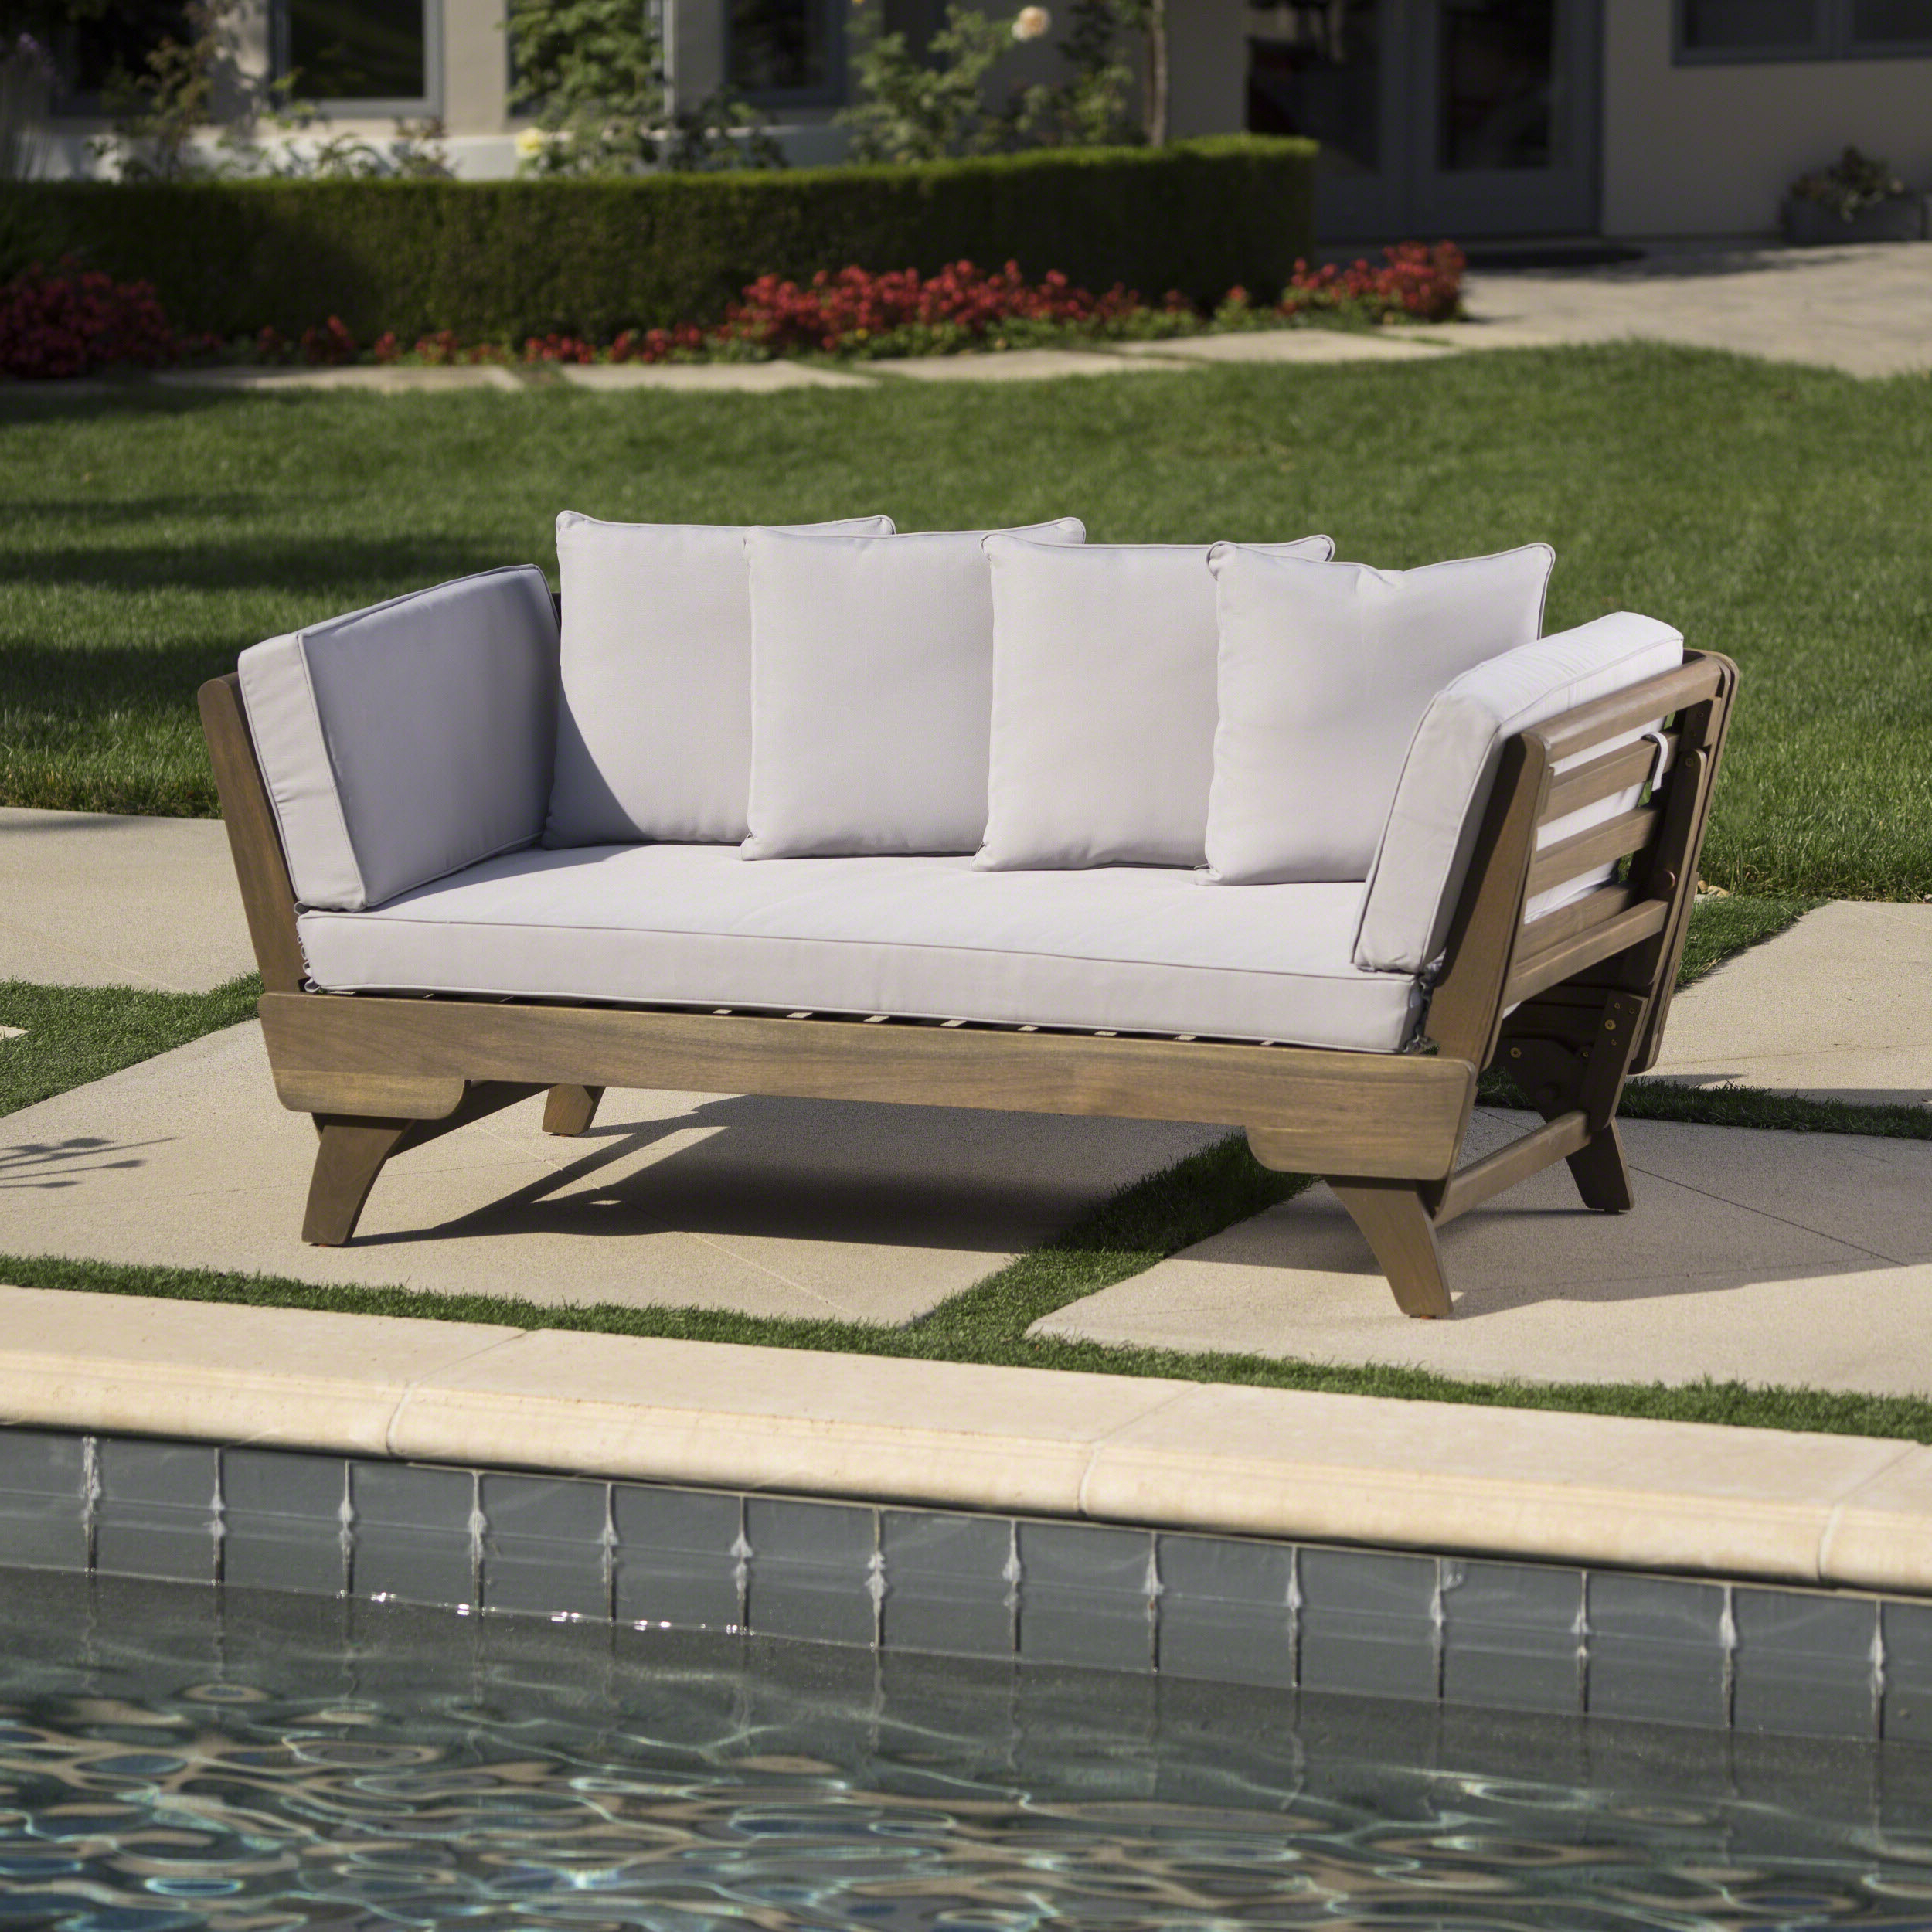 Bodine Patio Daybeds With Cushions For Most Recently Released Ellanti Patio Daybed With Cushions (Gallery 11 of 25)